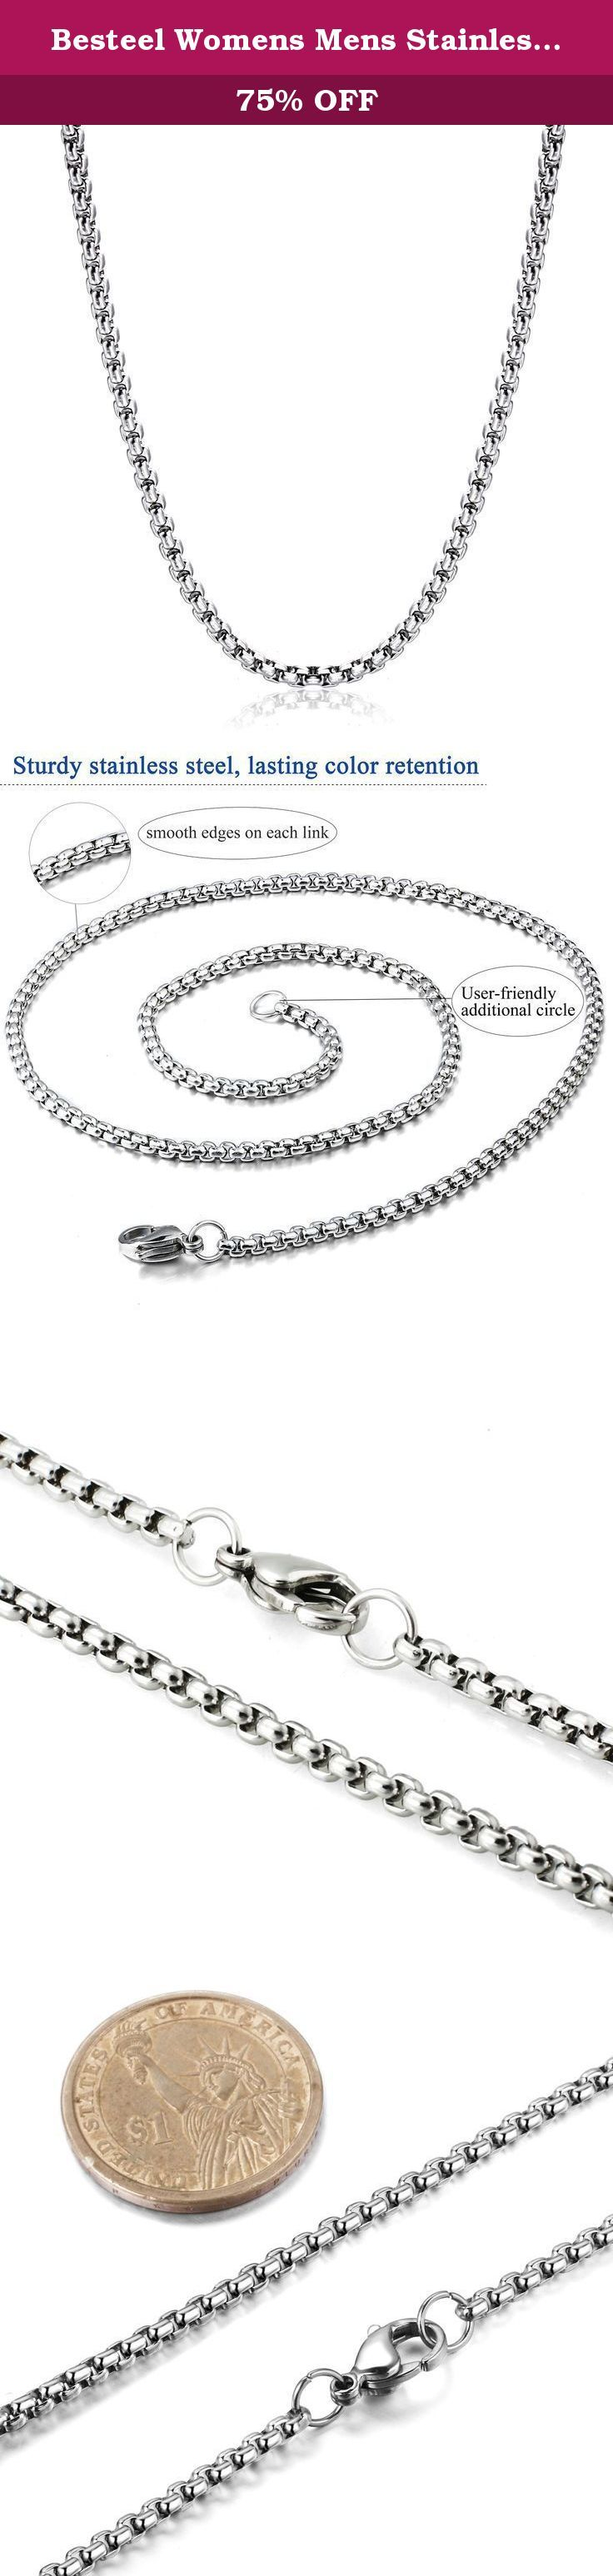 Besteel Womens Mens Stainless Steel Rolo Cable Wheat Chain Link Necklace 16-36 Inch (18 Inches). Besteel Jewelry: Best Jewelry Choice You Could Never Miss Besteel Jewelry are committed to providing you with the latest and most popular jewelry at affordable price. We attach great importance to customer experience and striving for 100% customer satisfaction. Find beautiful jewelry that highlight your charm or a special gift for your loved one from Besteel Collection. Mens Womens Stainless...